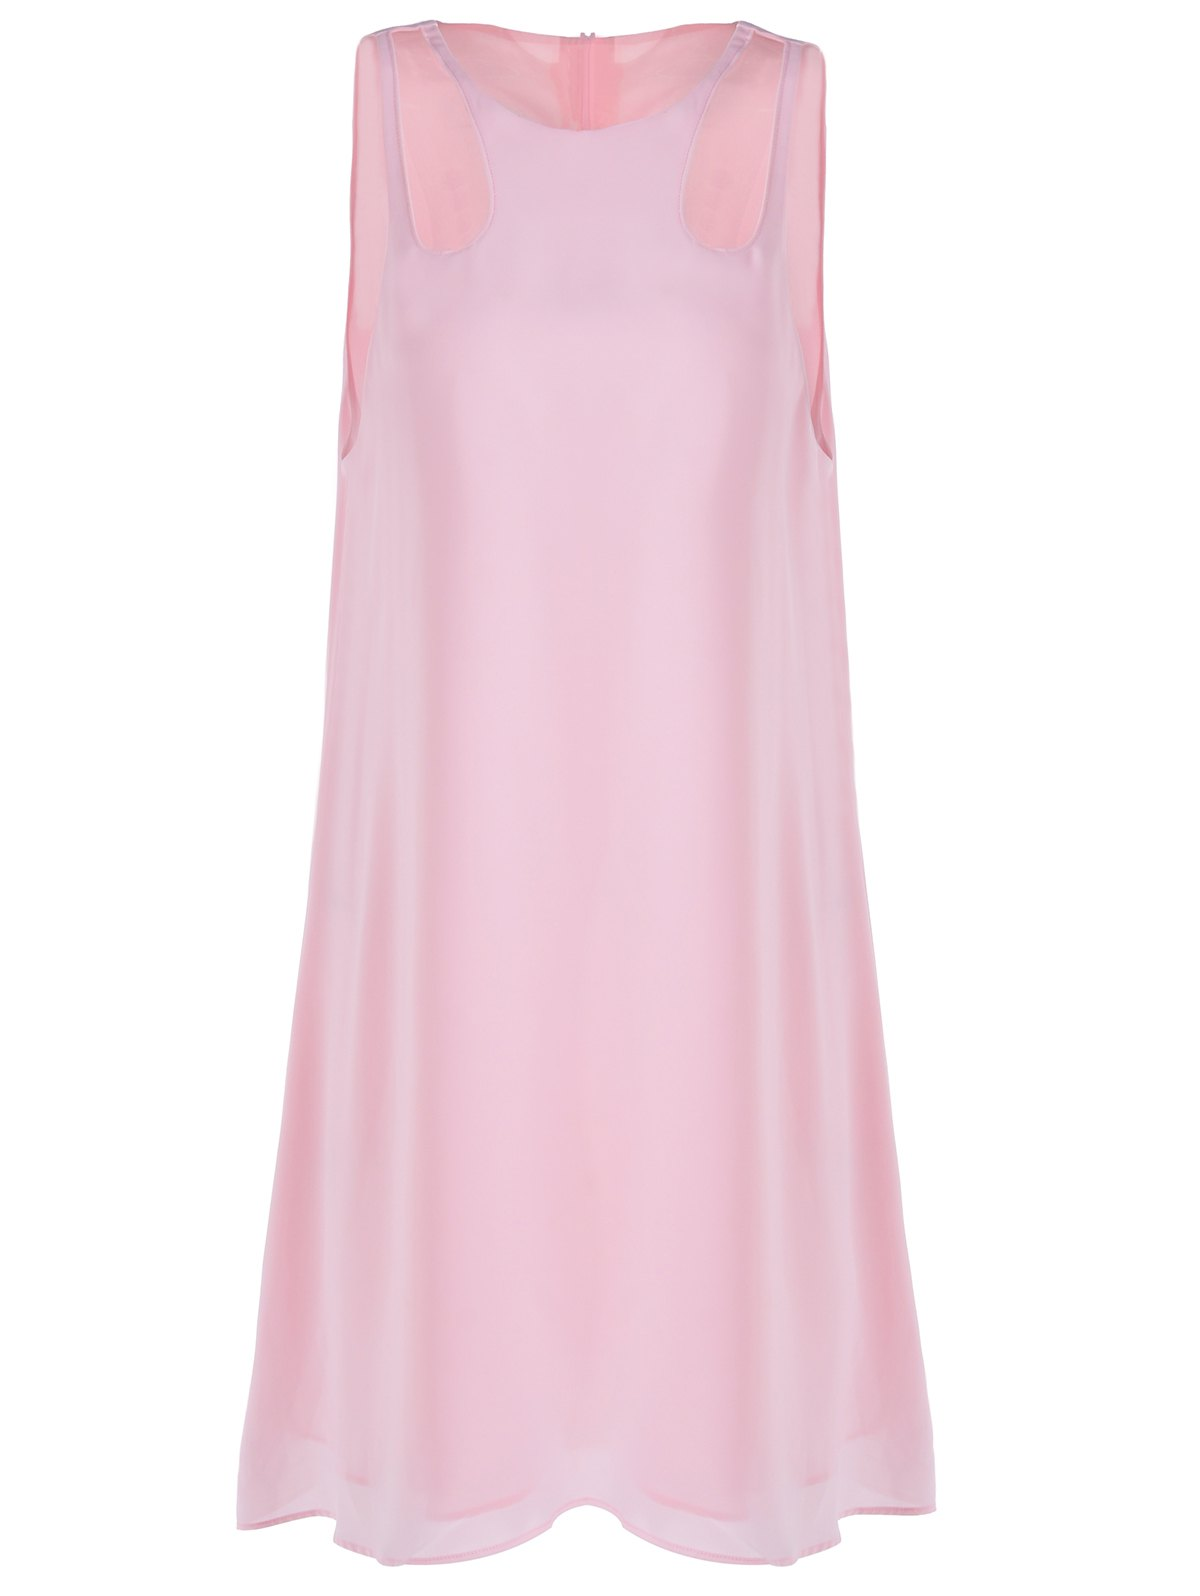 Sweet Cut-Out Round Collar Sleeveless Dress For Woman - S LIGHT PINK